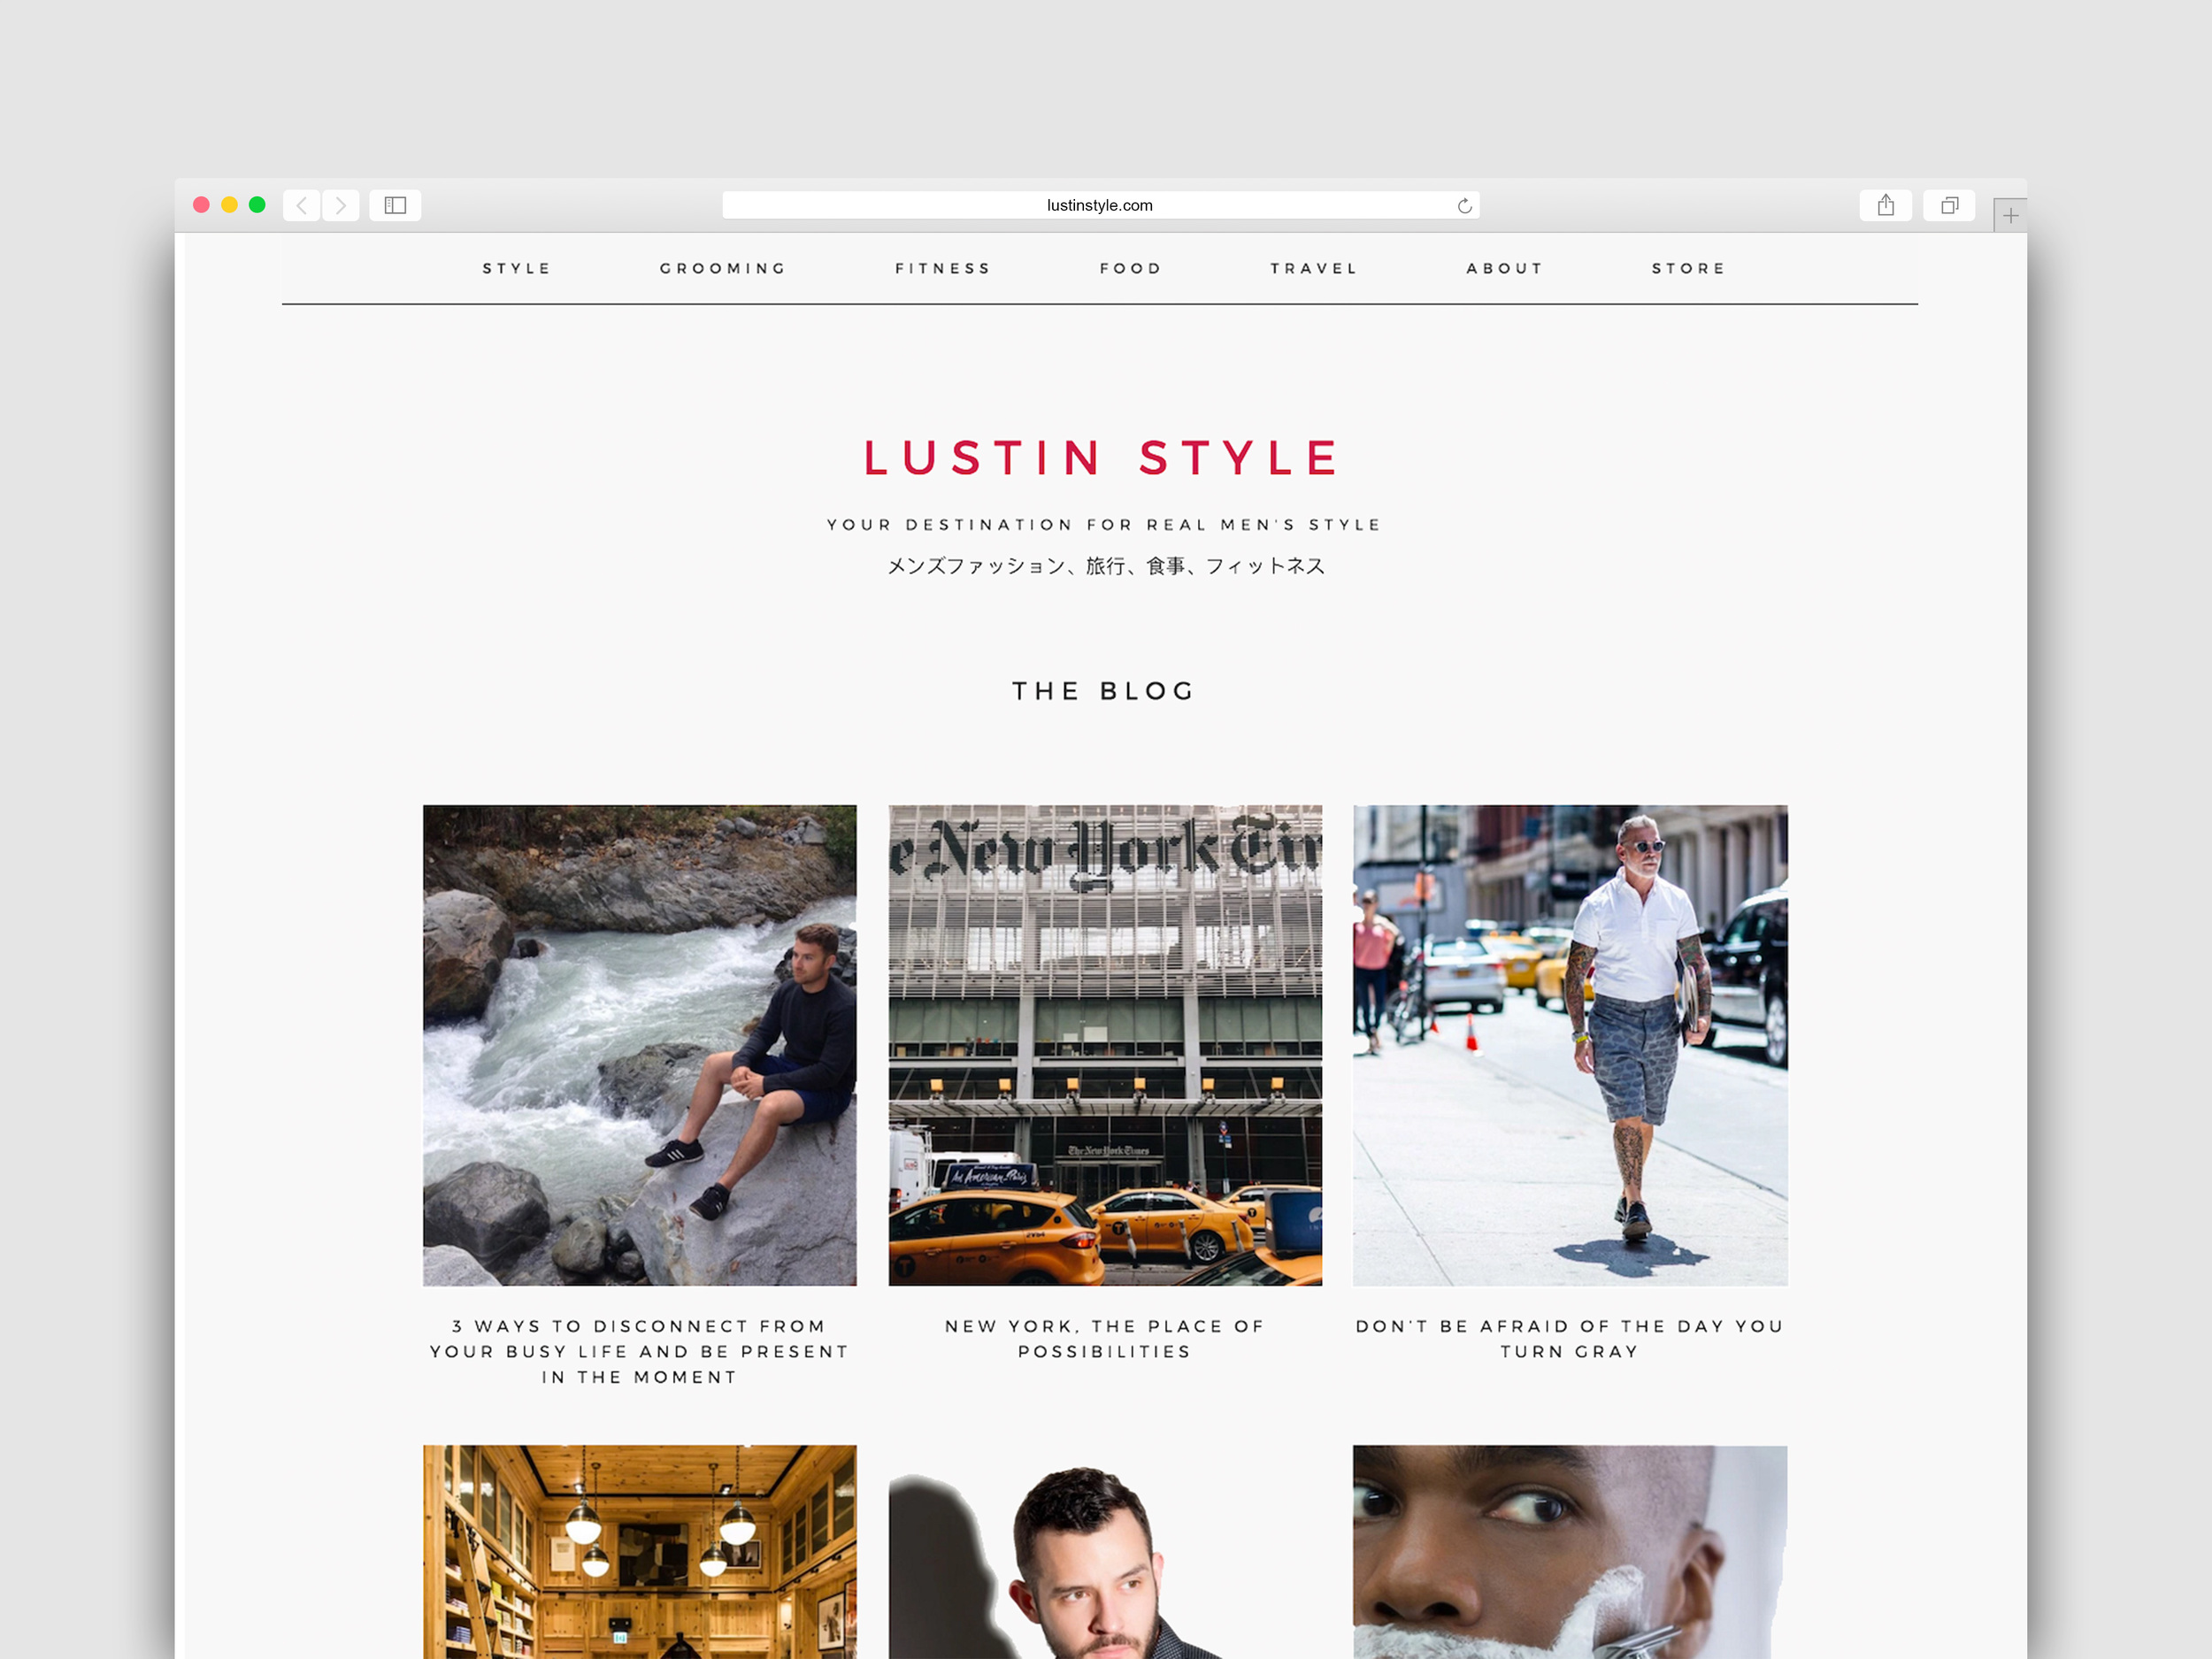 LUSTIN STYLE   Lustin Style was developed as part of my keen observations on specific middle and high end brands while living in Asia, and my recognition of a 'space' in the online market for fresher, more authentic and original views on a broad spectrum of styles and brands.